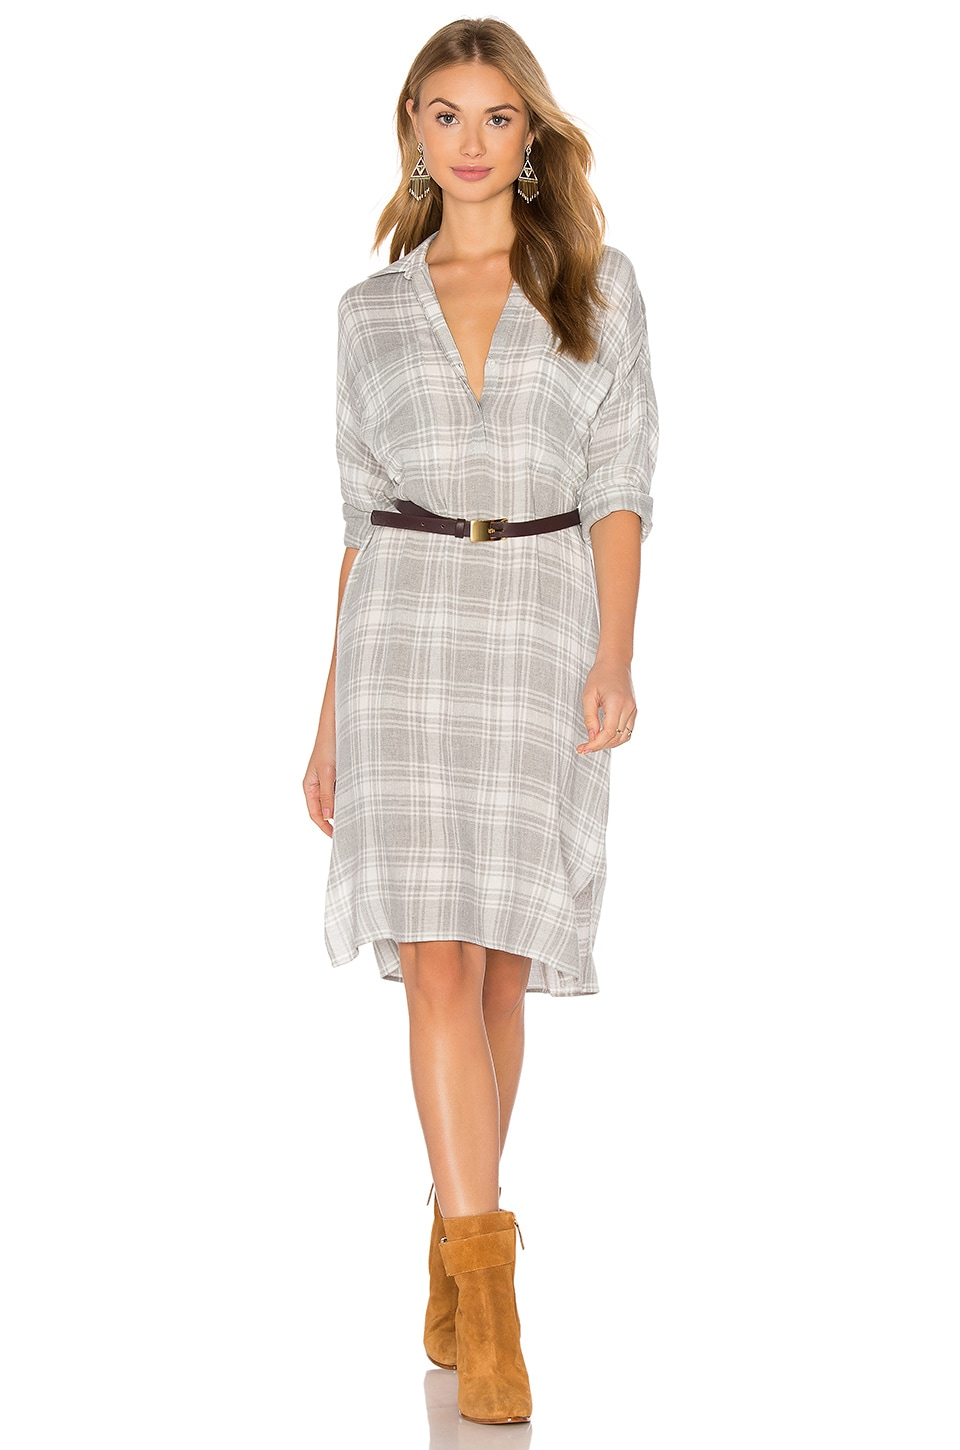 Oversized Shirt Dress by James Perse